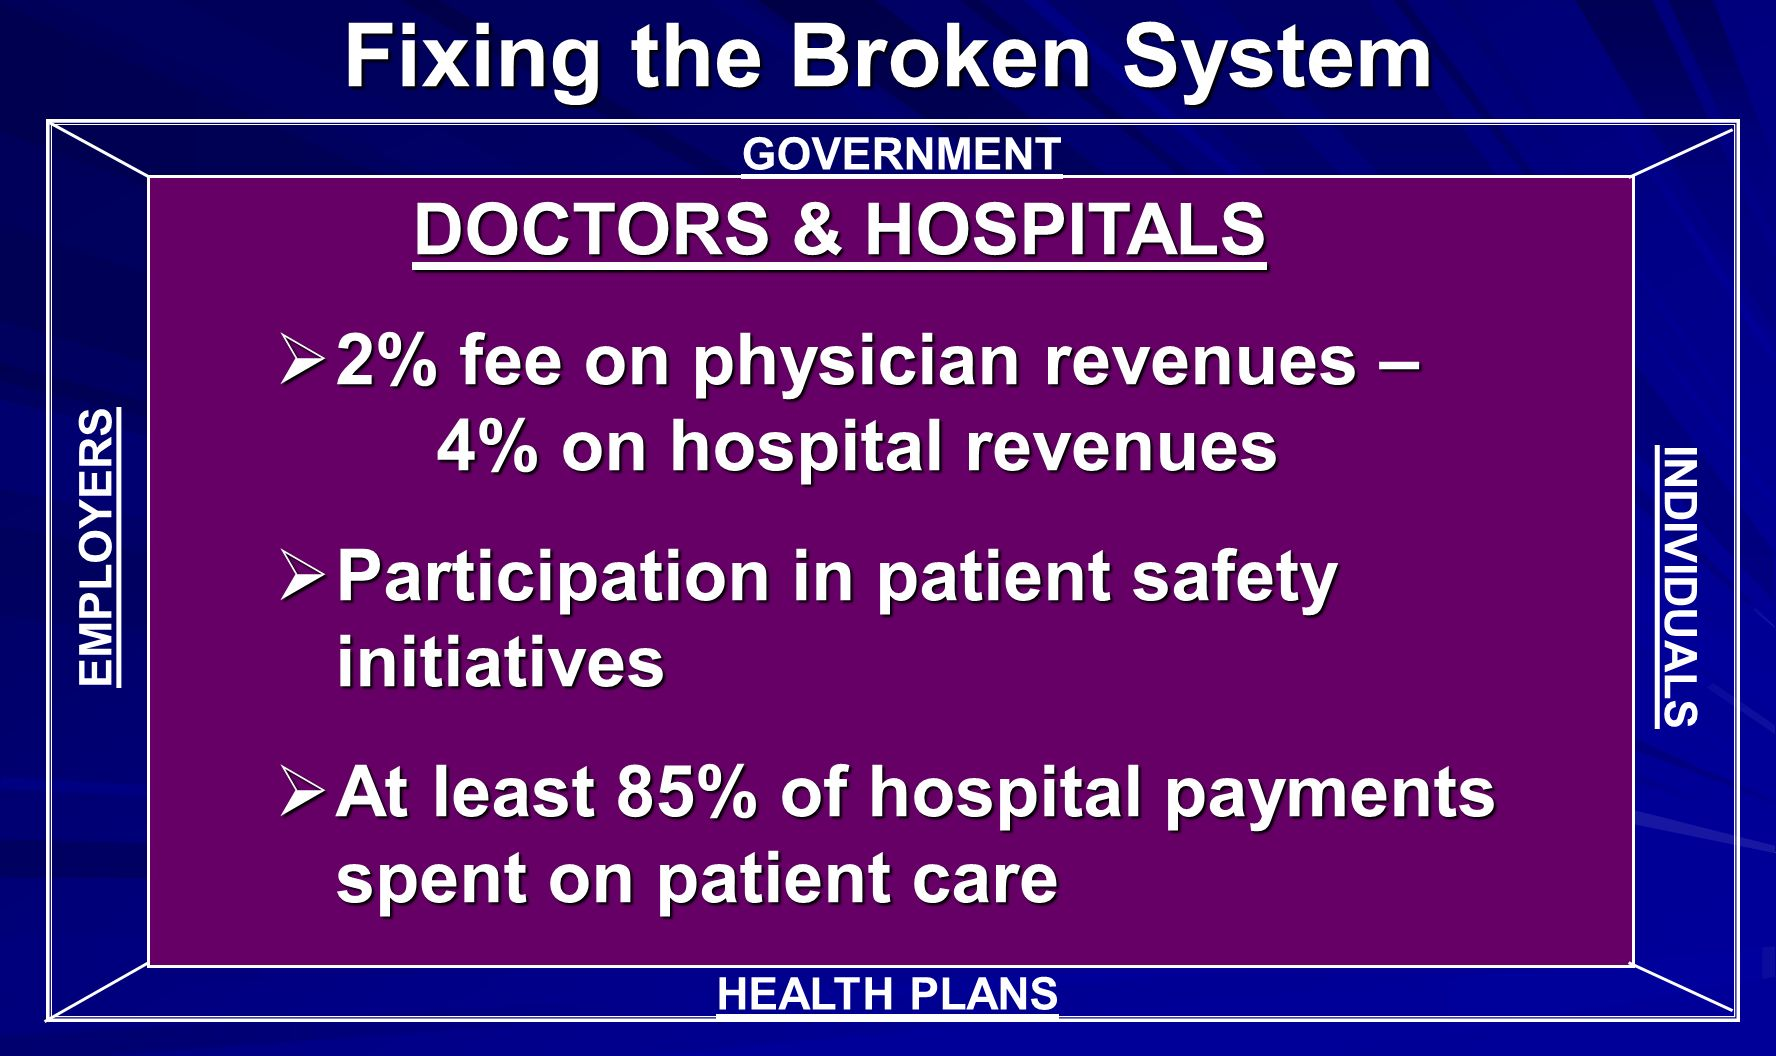 GOVERNMENT DOCTORS & HOSPITALS 2% fee on physician revenues – 4% on hospital revenues 2% fee on physician revenues – 4% on hospital revenues Participa